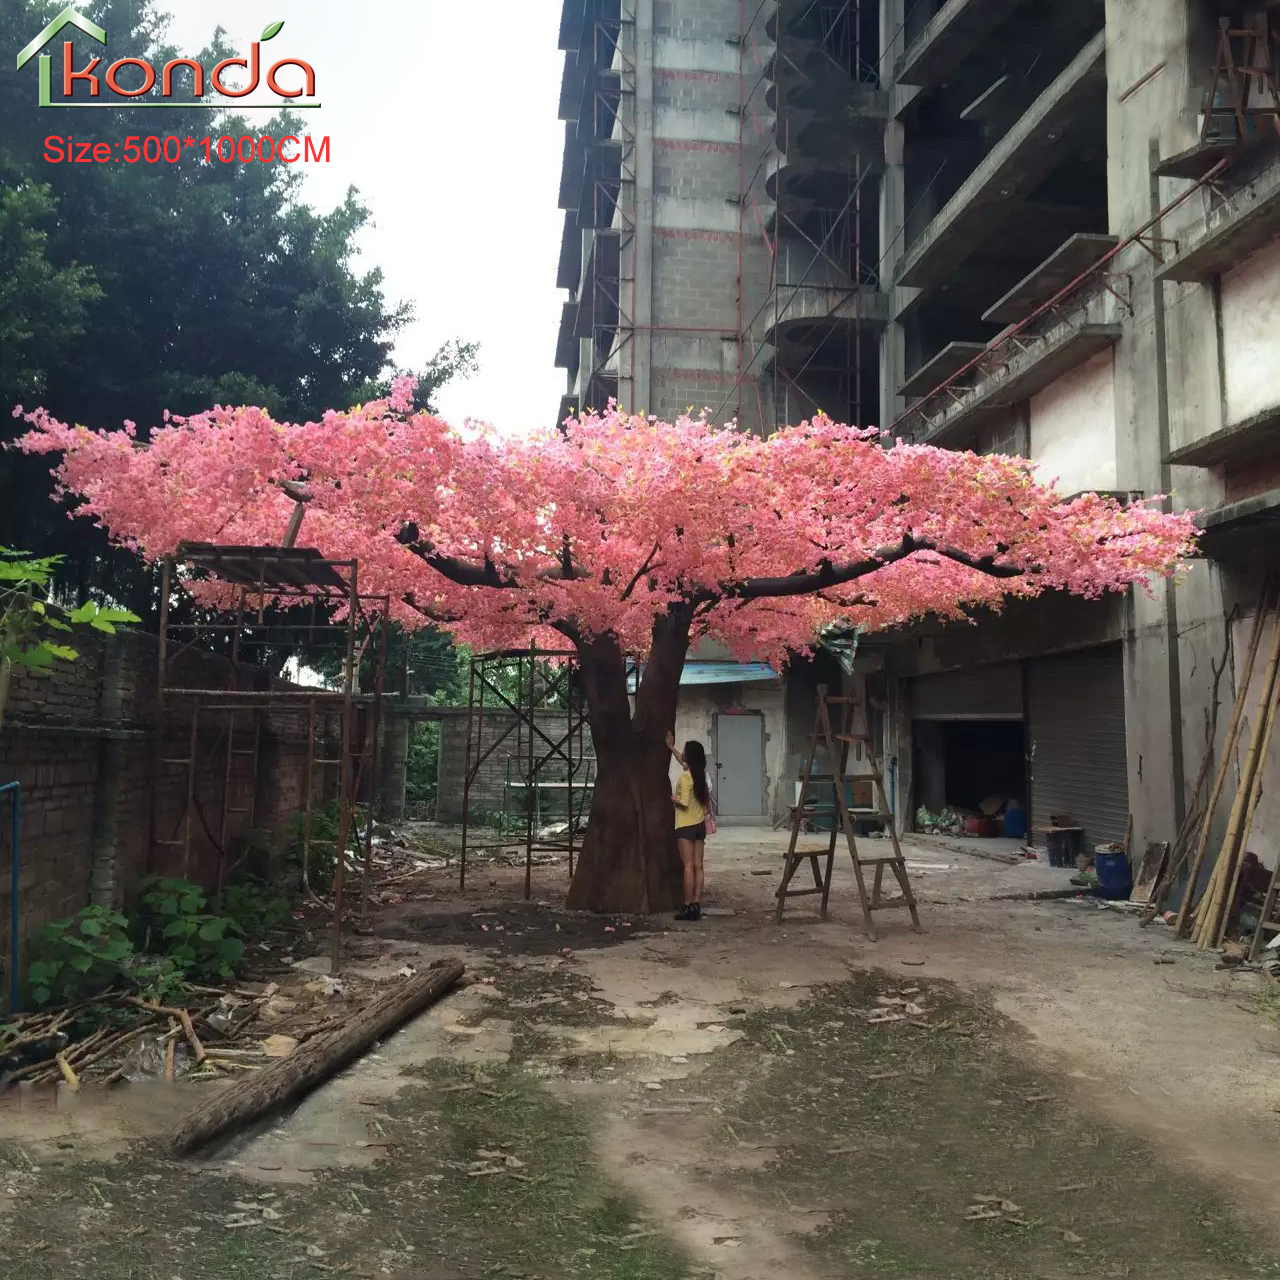 Customized 2 8m Artificial Cherry Blossom Tree In Wedding Decorations Wholesale China Plastic Cherry Blossom Trees Buy Plastic Cherry Blossom Tree Artificial Indoor Cherry Blossom Tree Cherry Blossom Trees Product On Alibaba Com